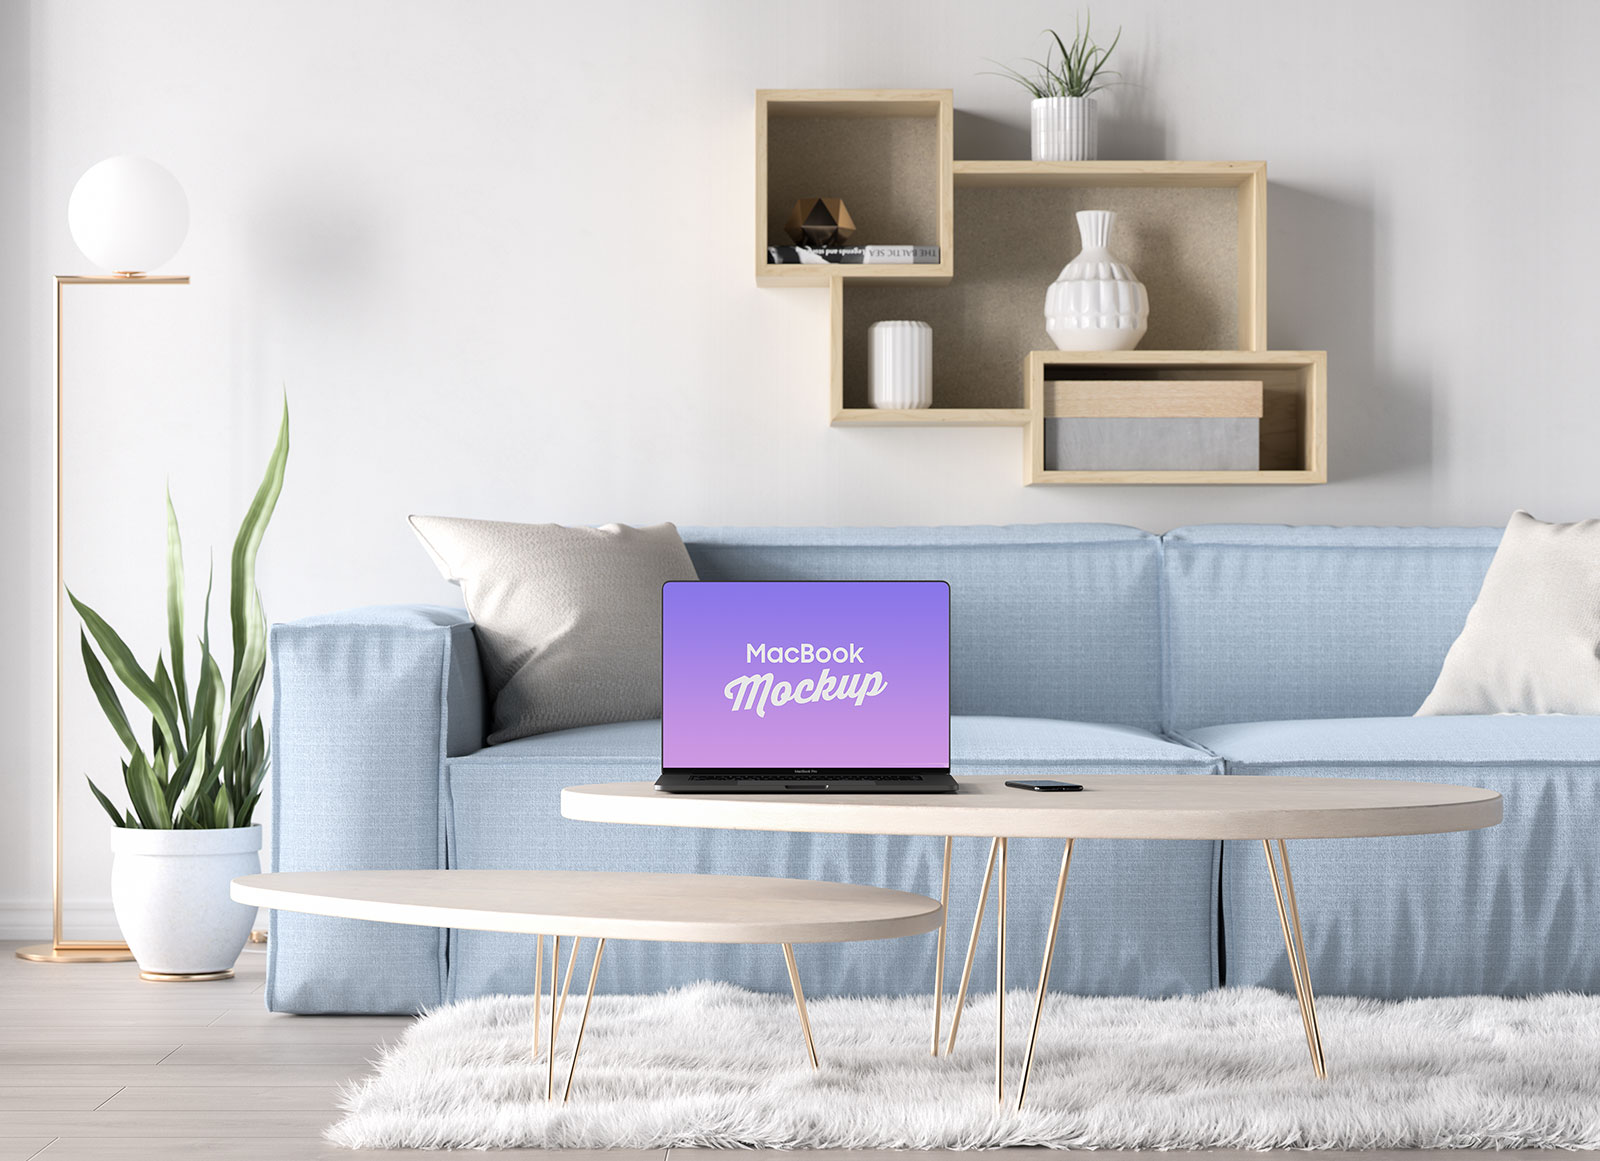 Free-Bezel-Less-MacBook-Pro-2019-in-Table-Mockup-PSD